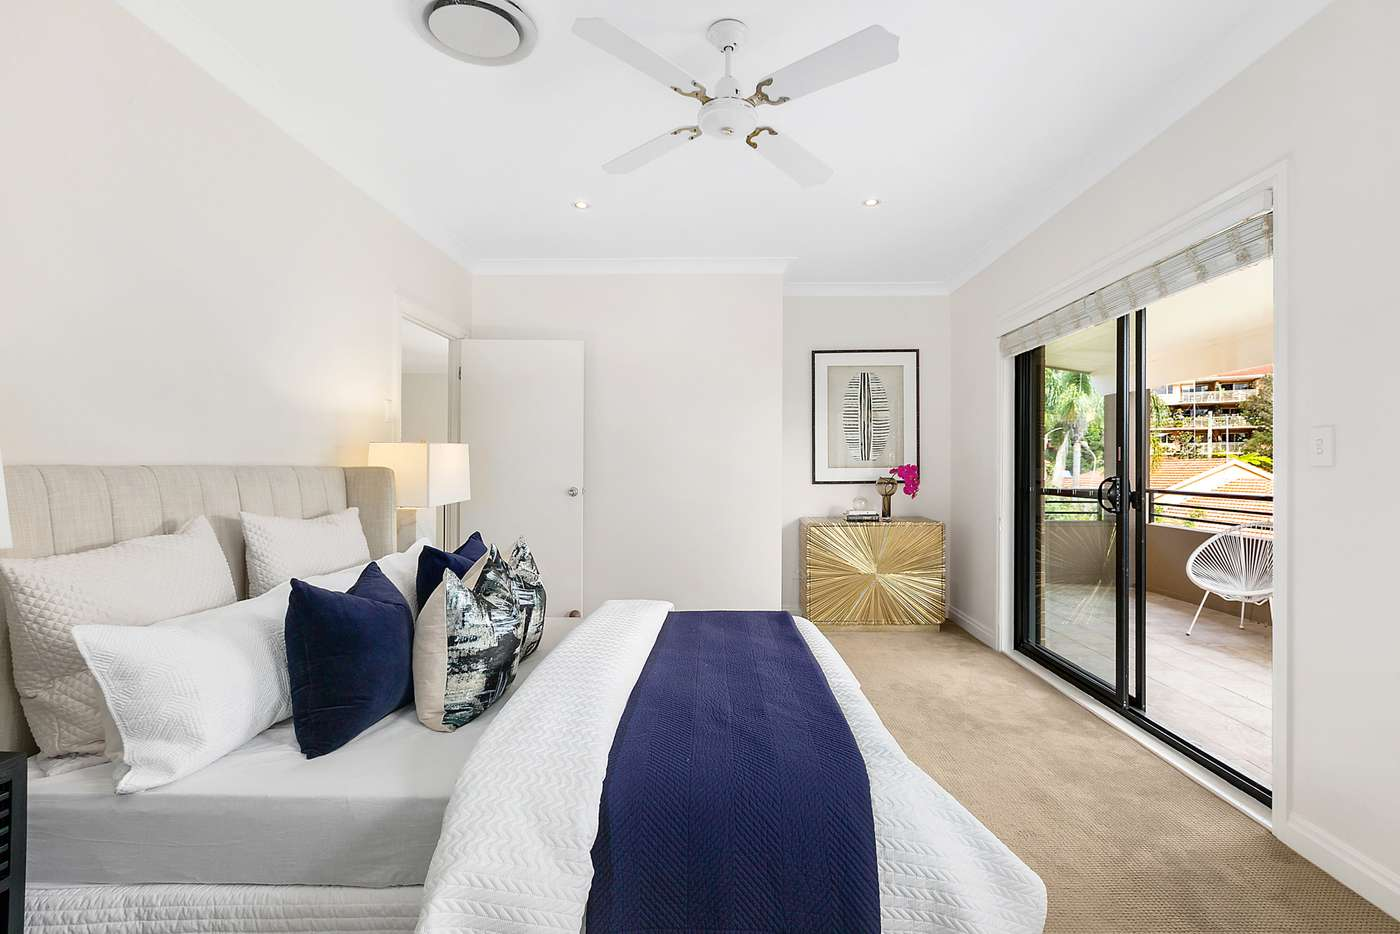 Fifth view of Homely townhouse listing, 5/16-18 Burley Street, Lane Cove NSW 2066